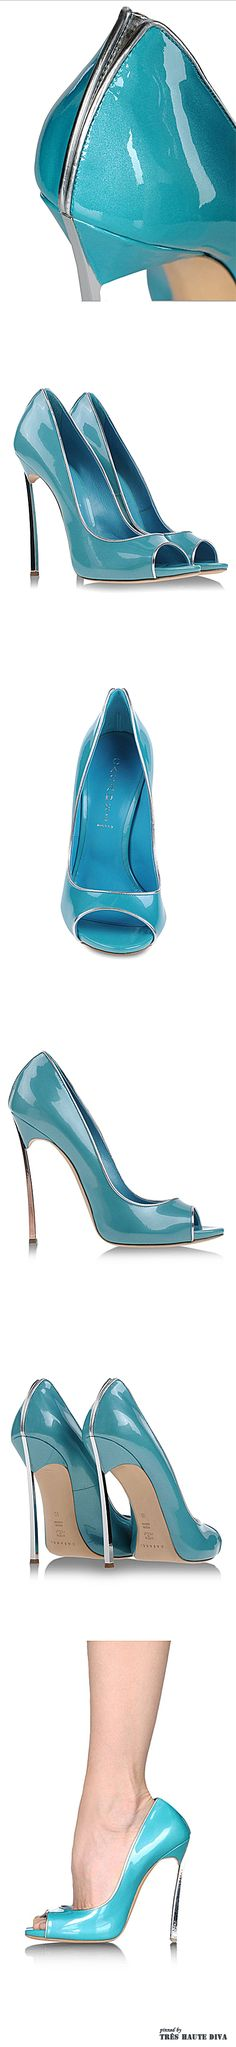 Casadei ♥ Turquoise Blue Glossy Color, reminds me of my first car  '57 Chevrolet, Bellaire! Fun, Sweet & Sexy! The Back Zipper on these Heels is a nice added sexy touch! ♥ These would be great paired with a Modern / Retro Pin Up Outfit! ♥